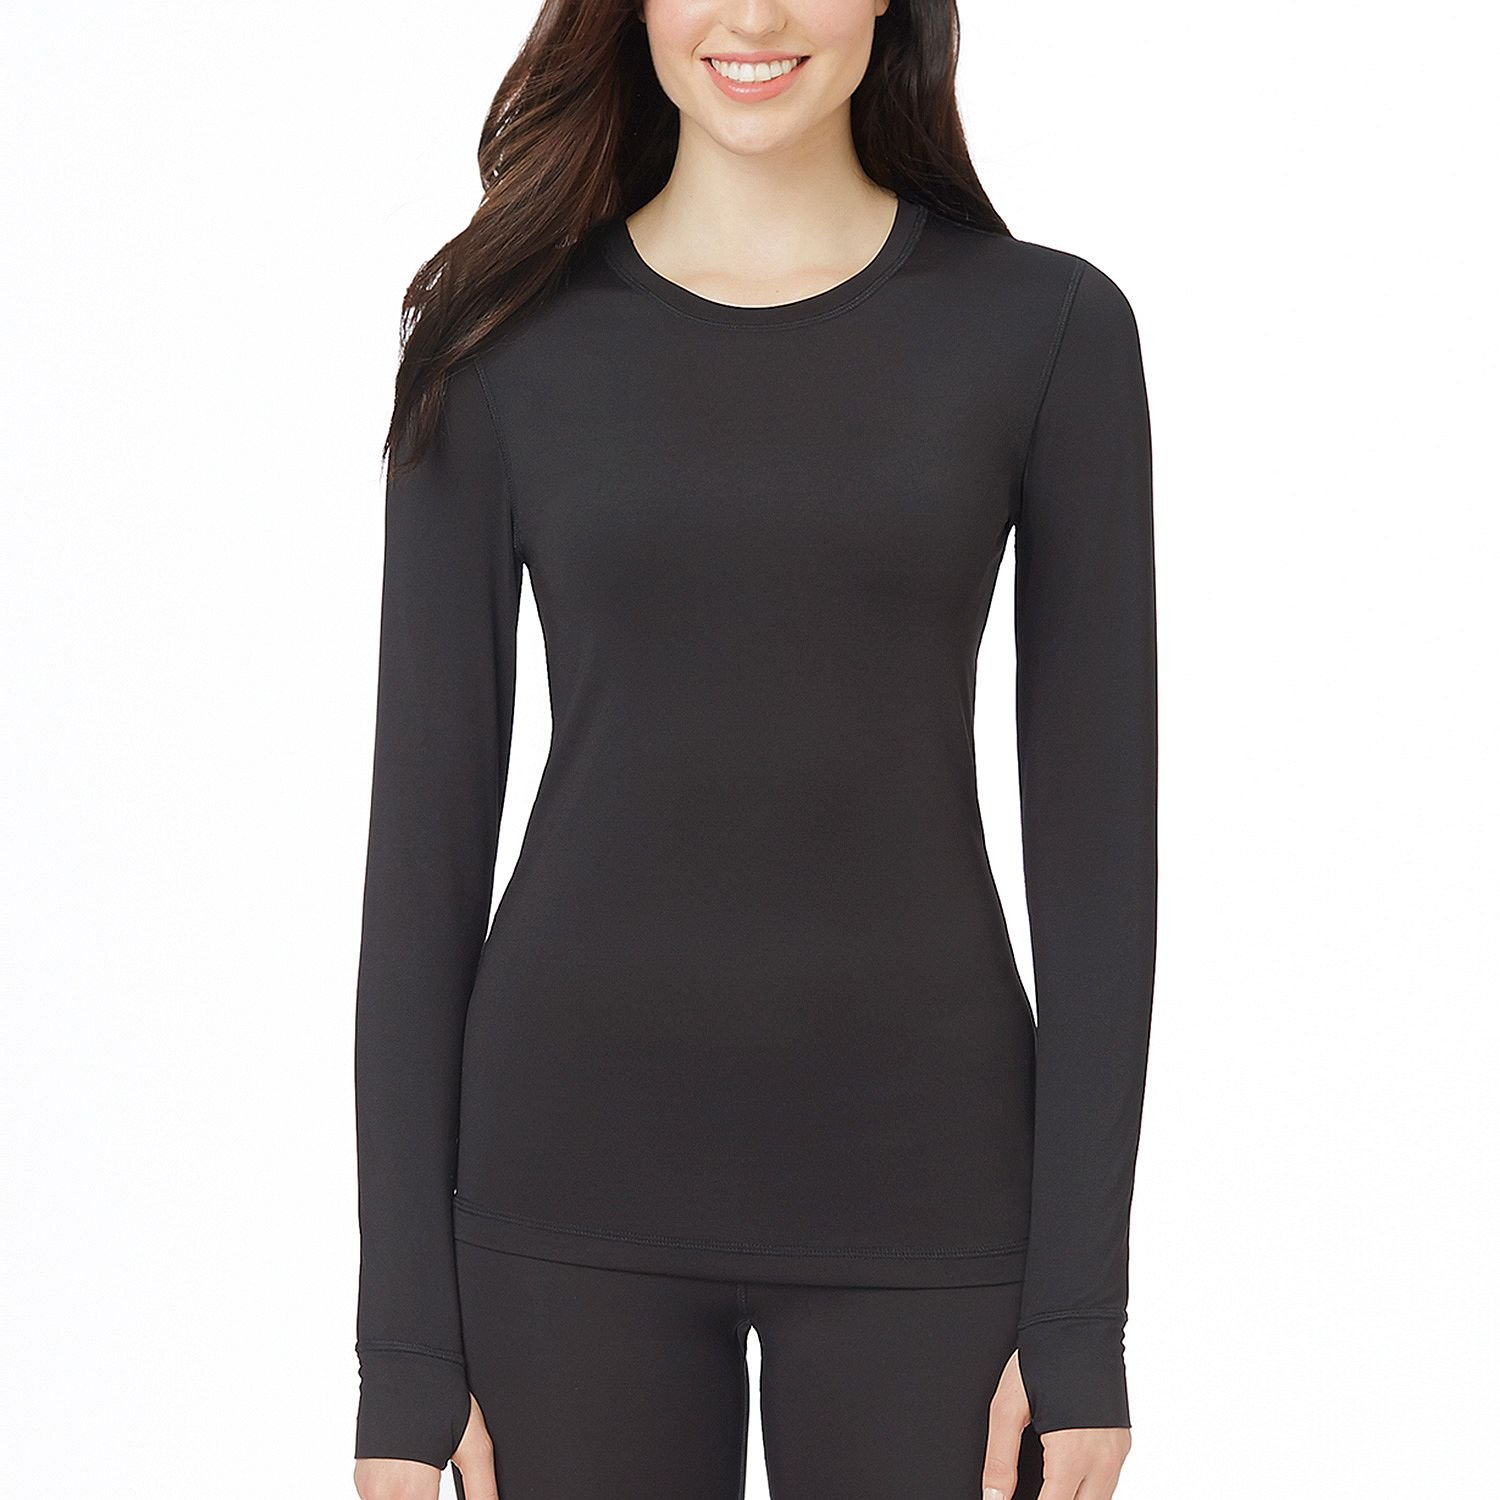 Cuddl Duds active tech warm layer Long Sleeves crew top with thumbholes - Black